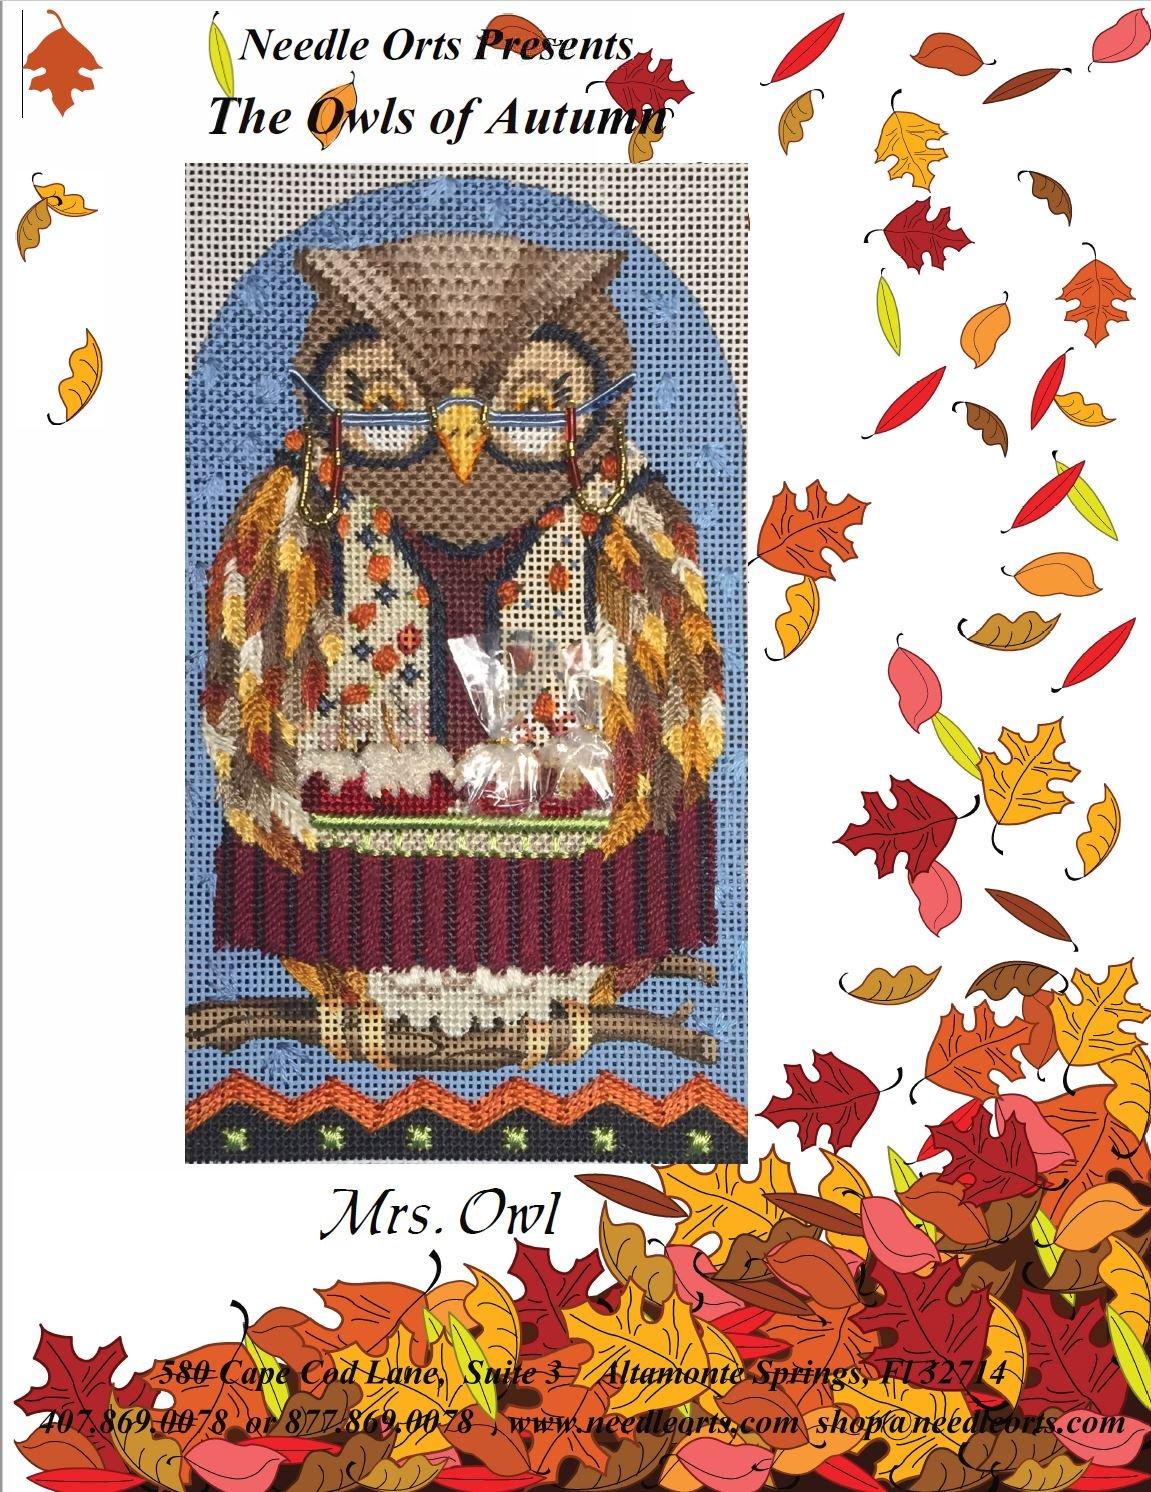 Stitch Guide - Owls of Autumn, Mrs. Owl